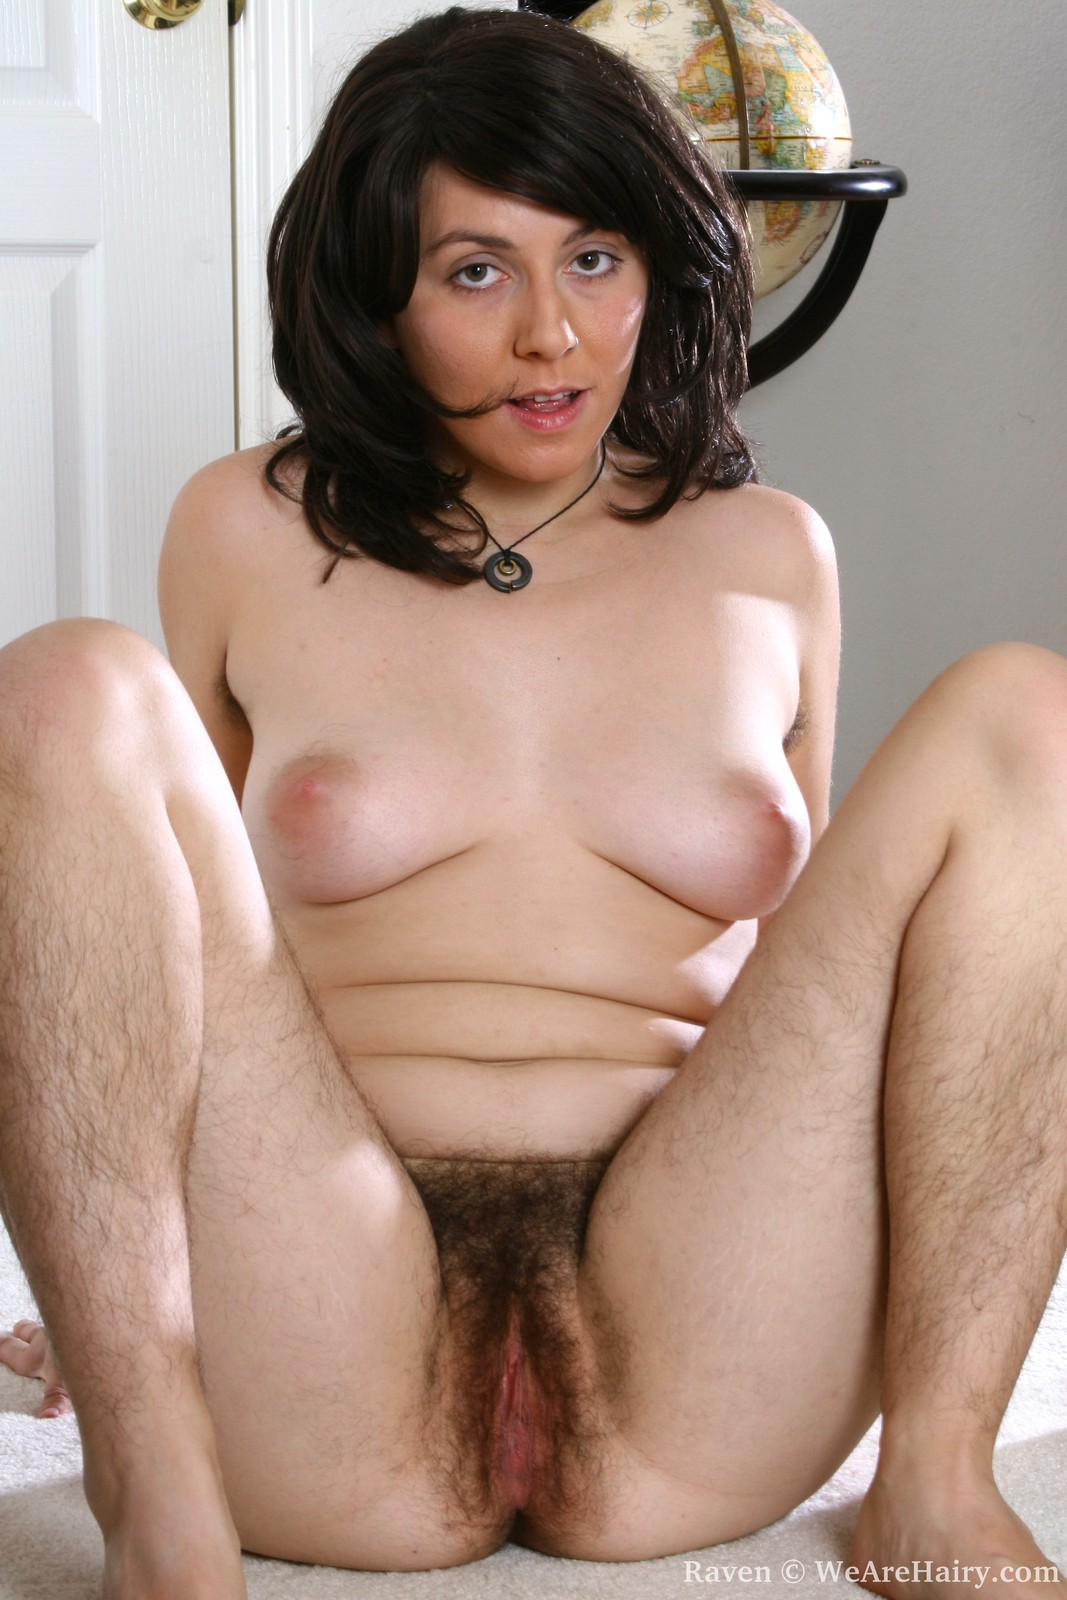 Hairy Raven - This all natural girl is just covered in fluff! Hairy legs, hairy armpits,  hairy ass and of course HAIRY PUSSY! Raven is the complete package.